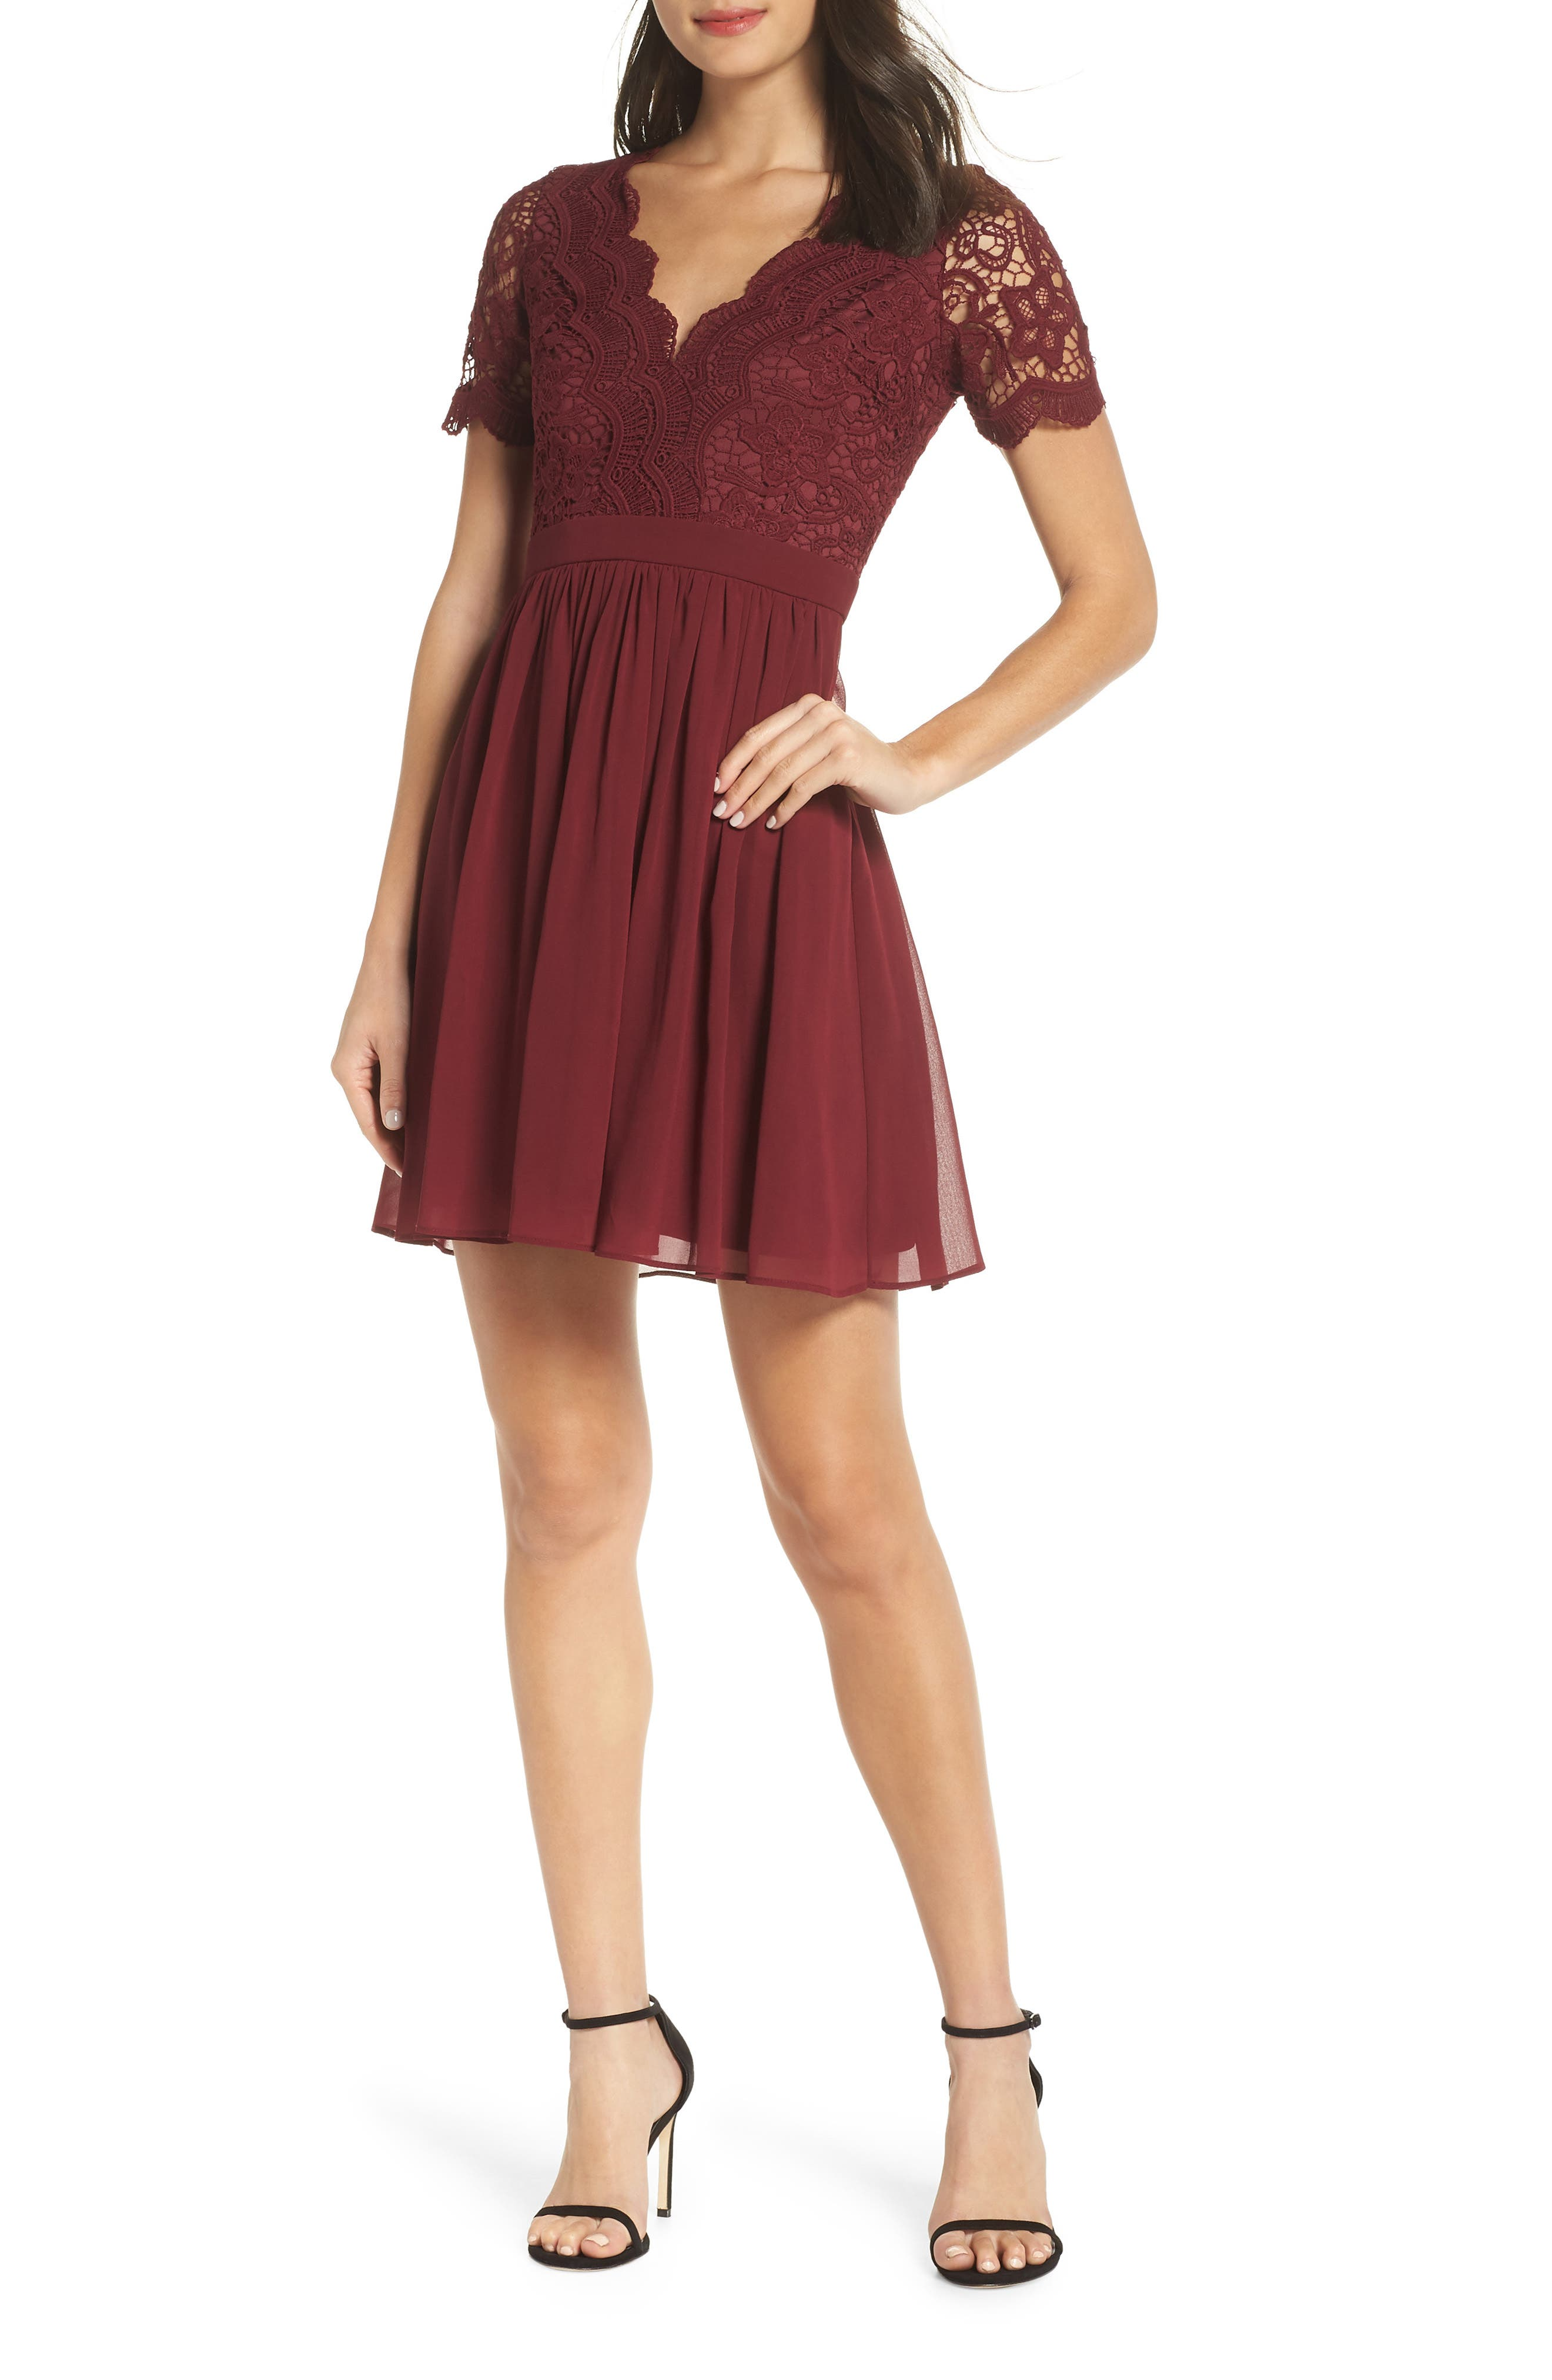 Lulus Angel In Disguise Lace & Chiffon Party Dress, Burgundy